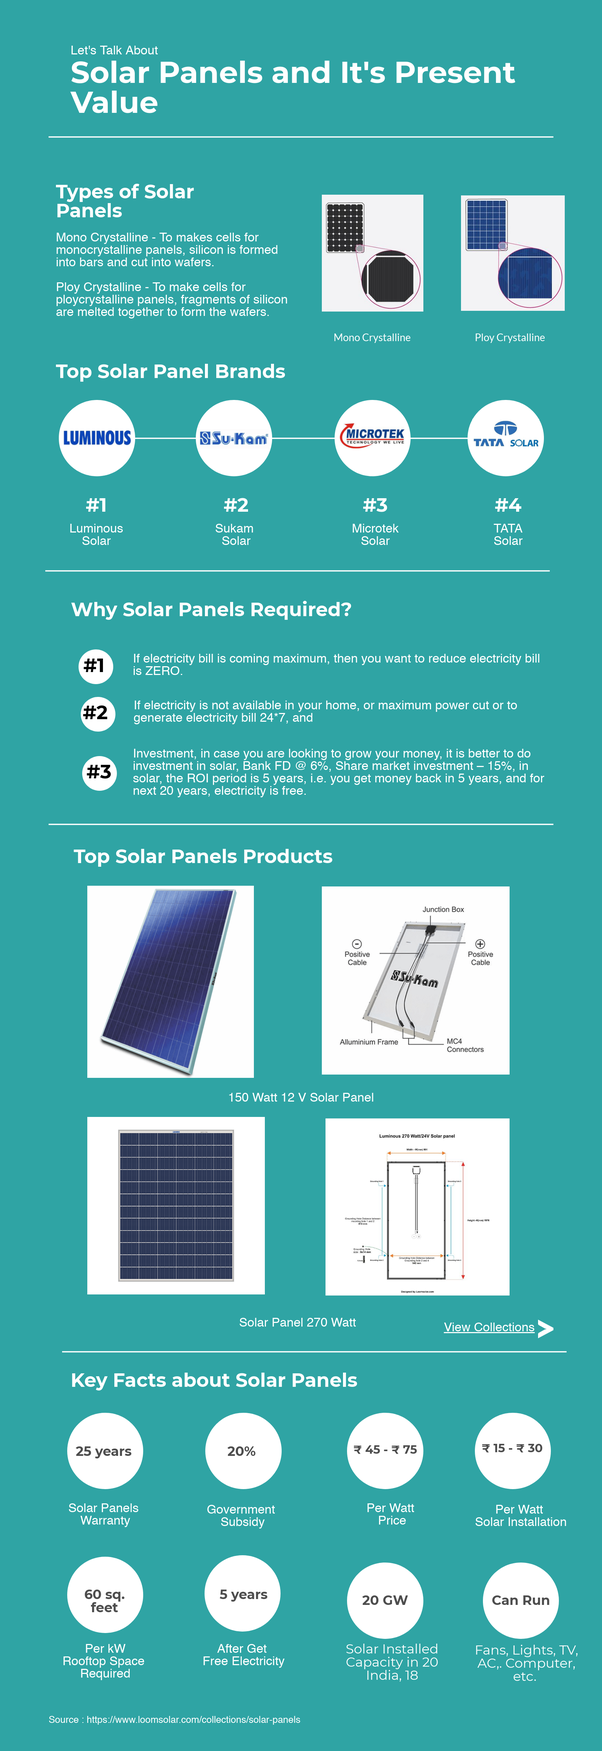 What are the best wholesale markets of solar panels in India? - Quora